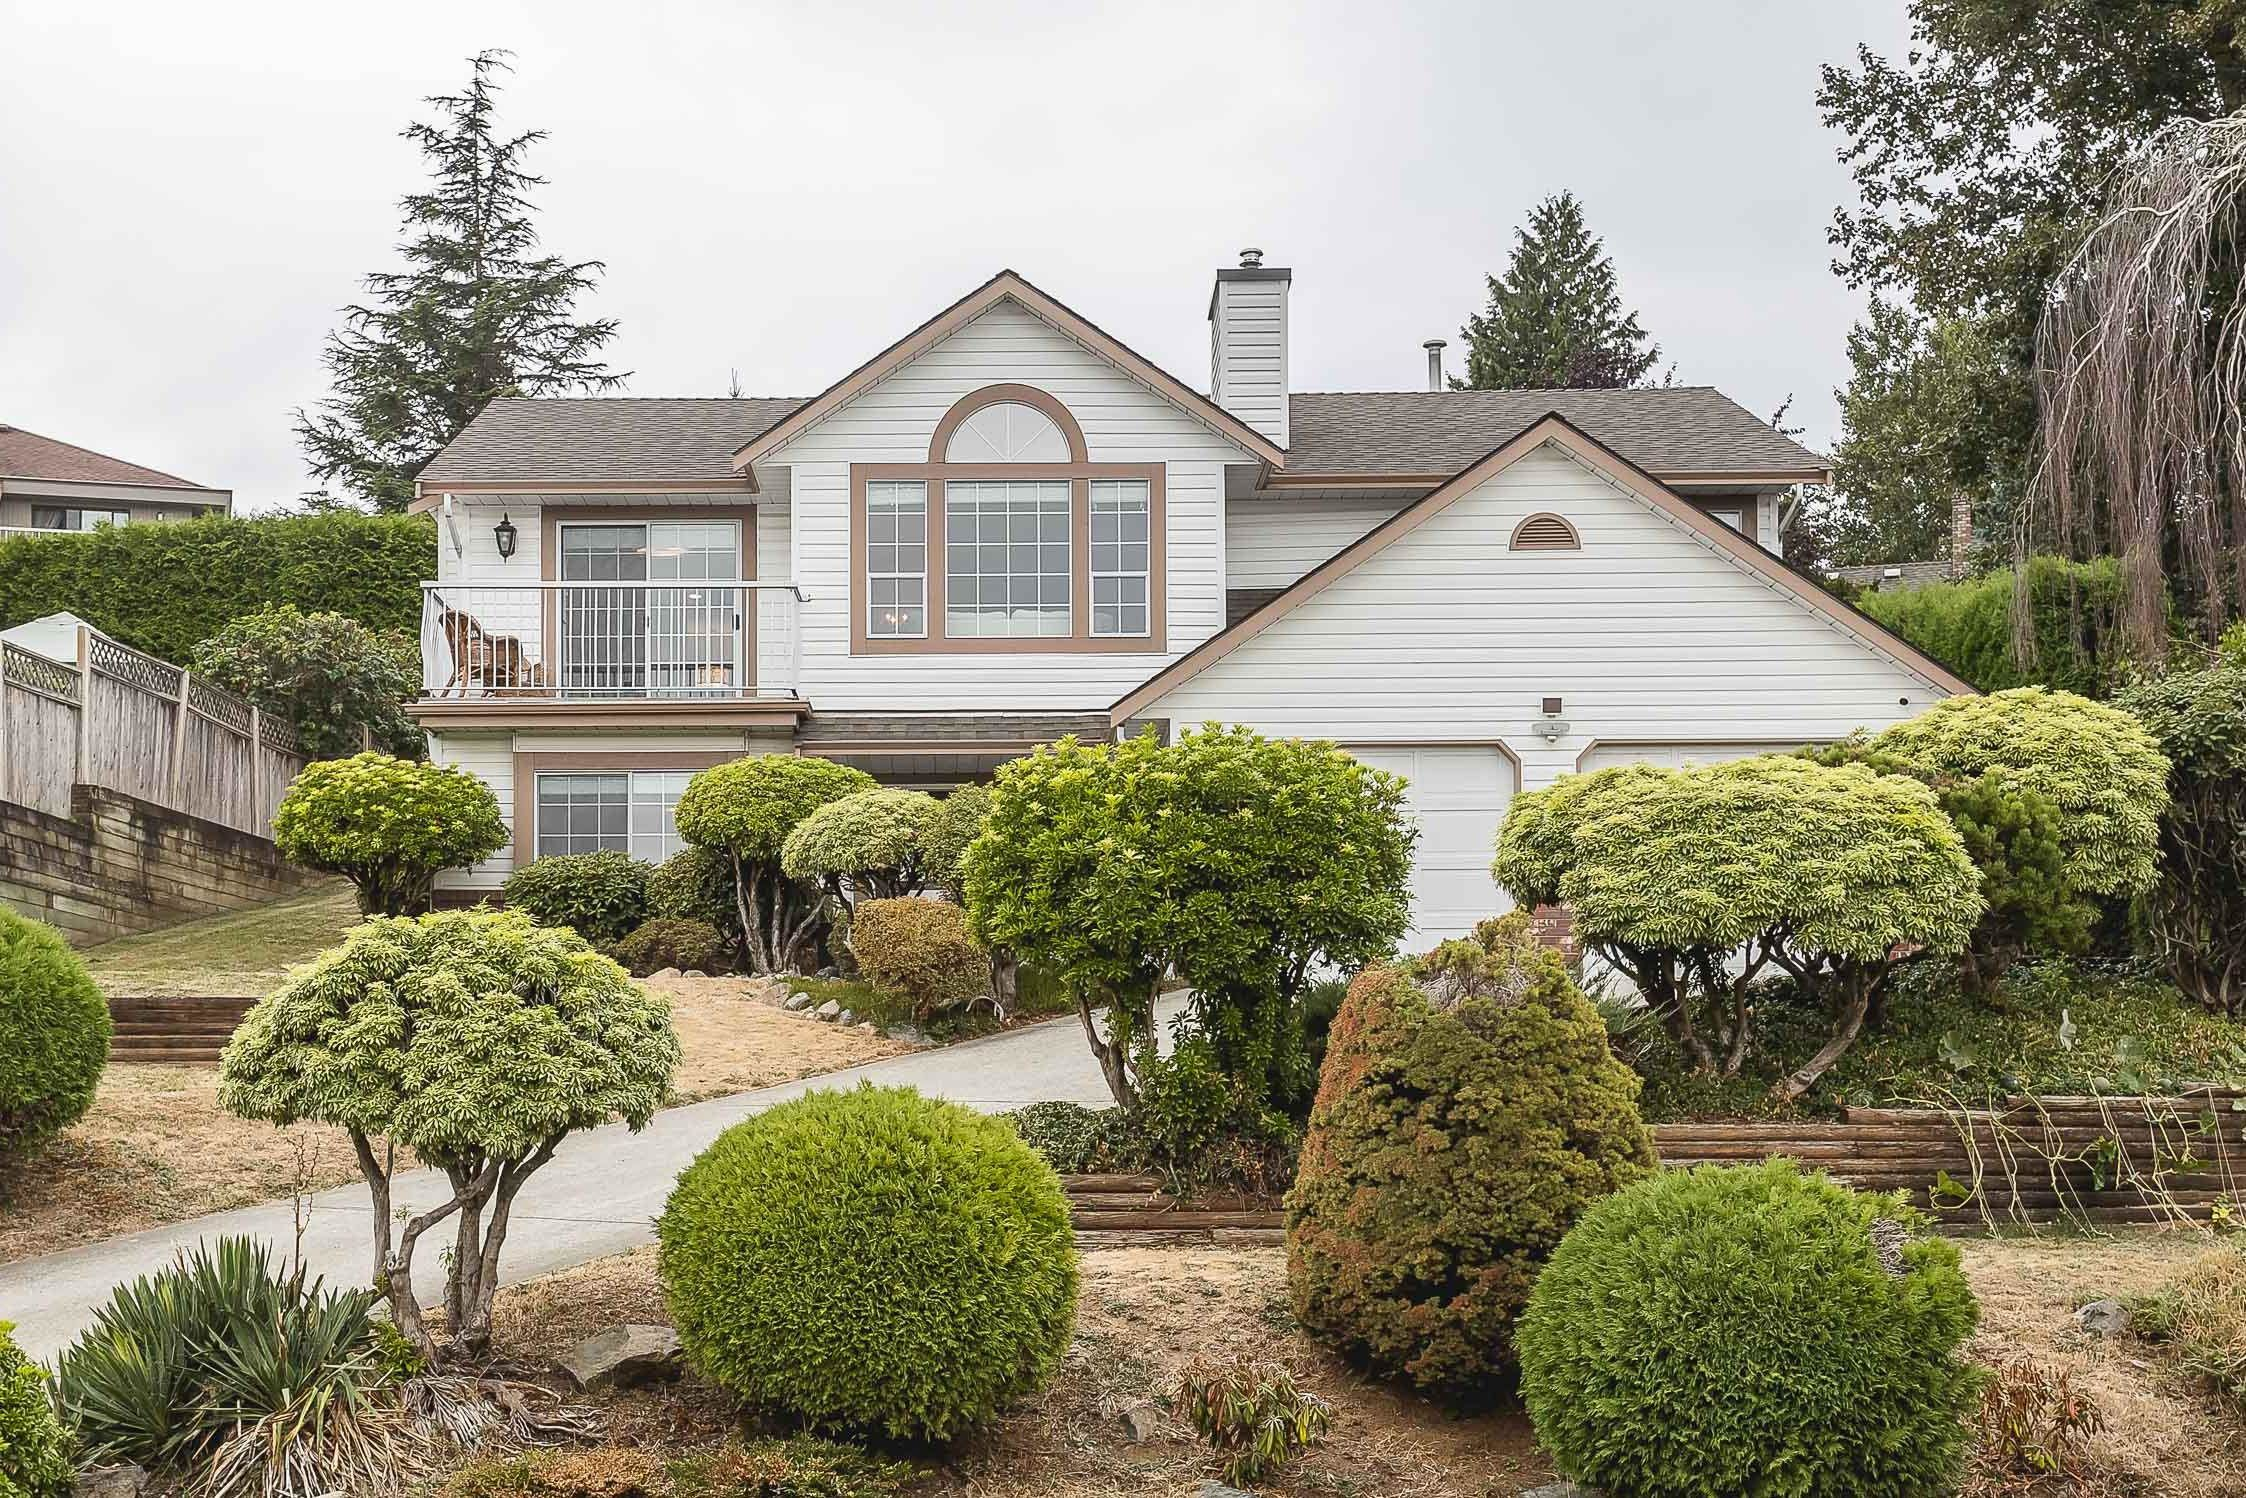 Main Photo: 2375 MOUNTAIN DRIVE in Abbotsford: Abbotsford East House for sale : MLS®# R2610988